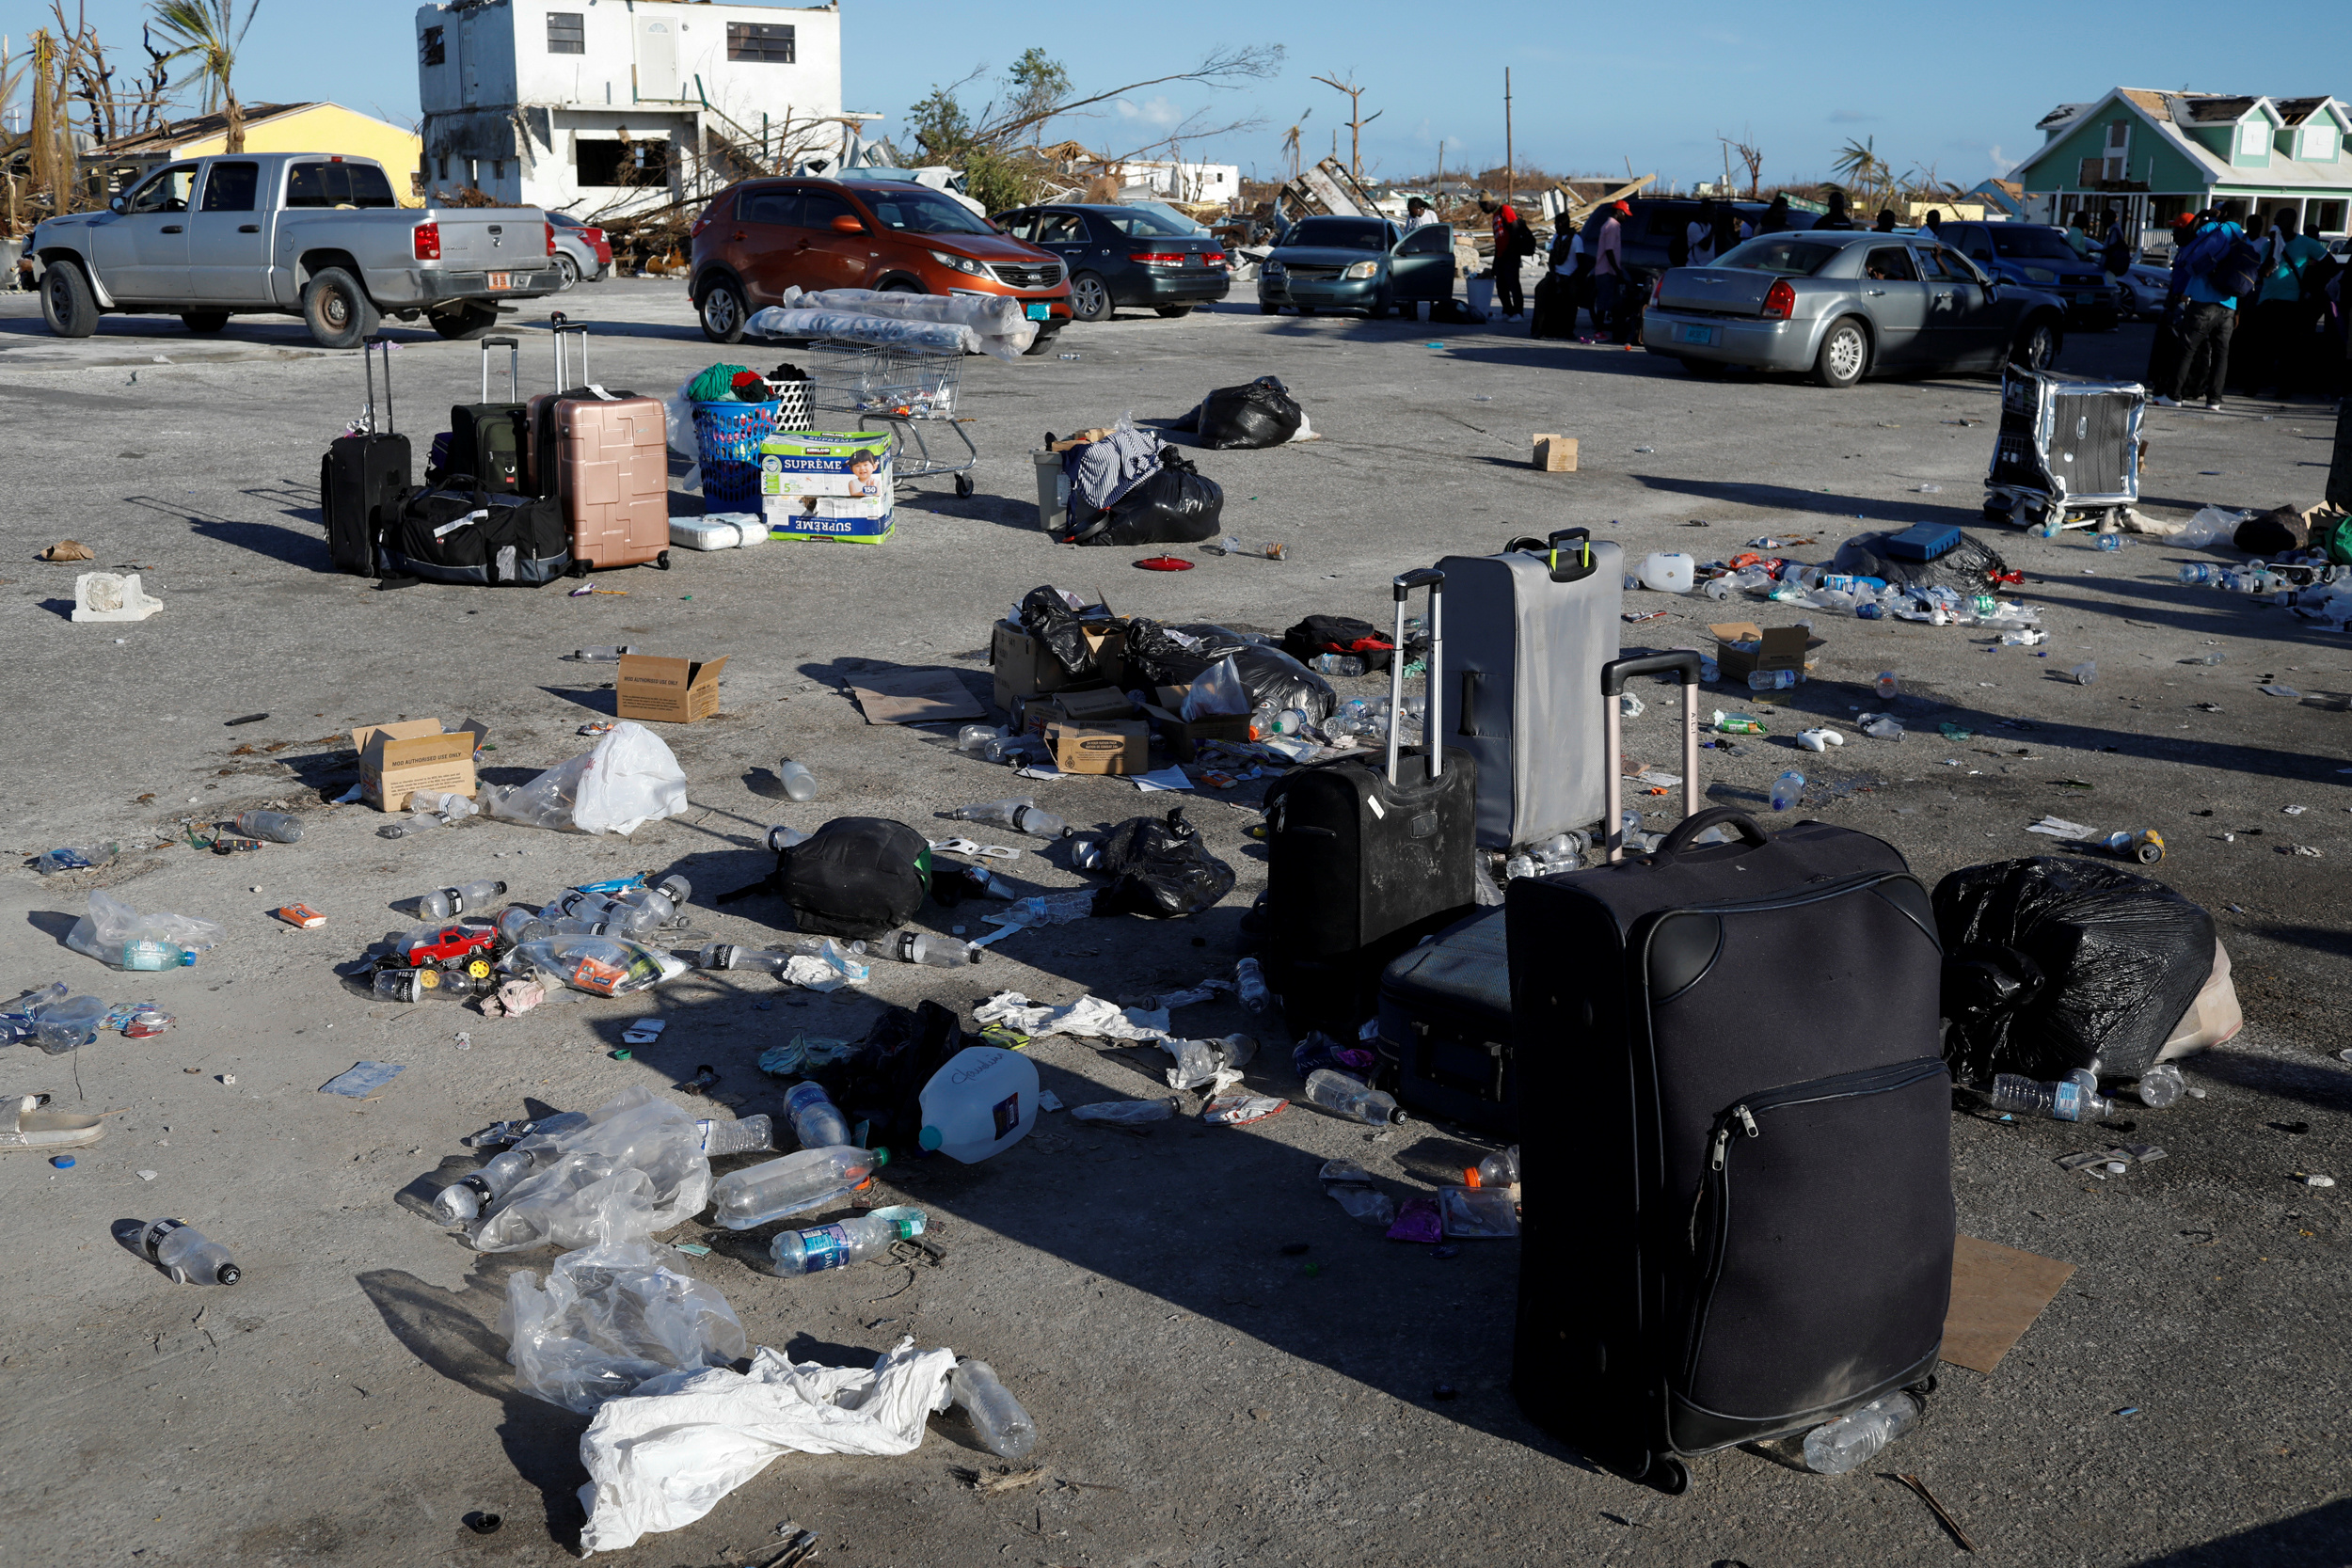 Suitcases, bags and trash are seen at Marsh Harbour Government Port during an evacuation operation after Hurricane Dorian hit the Abaco Islands in Marsh Harbour, Bahamas, September 6, 2019. REUTERS/Marco Bello